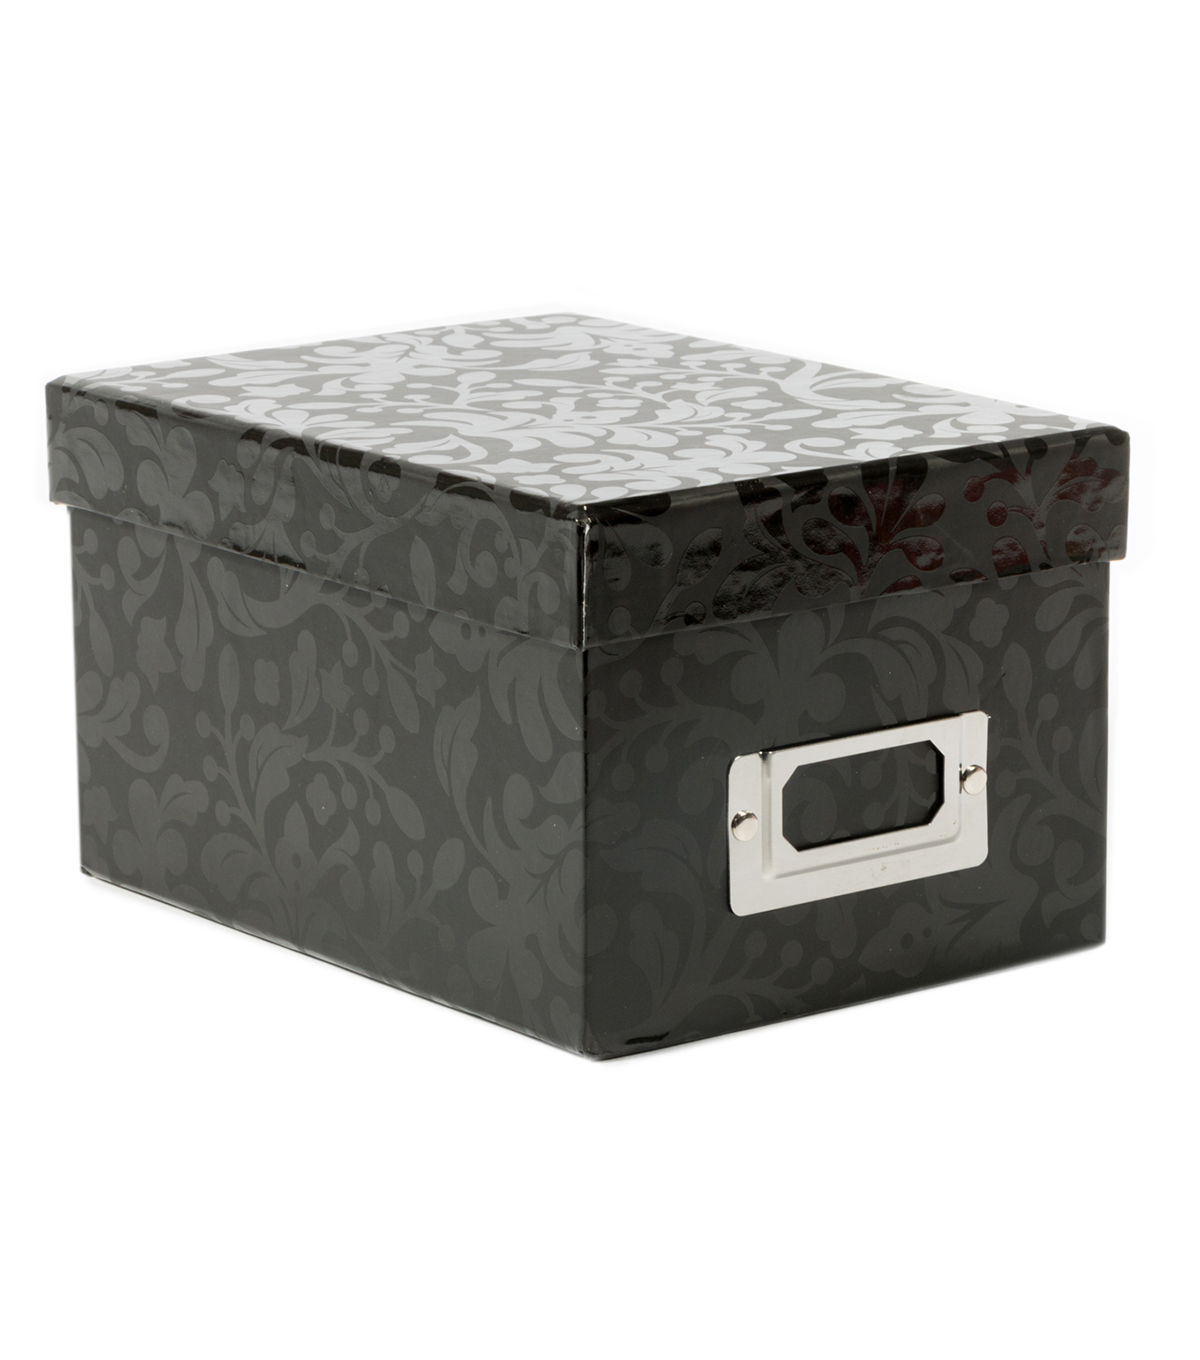 DCWV Mini Box: Black with floral patterns